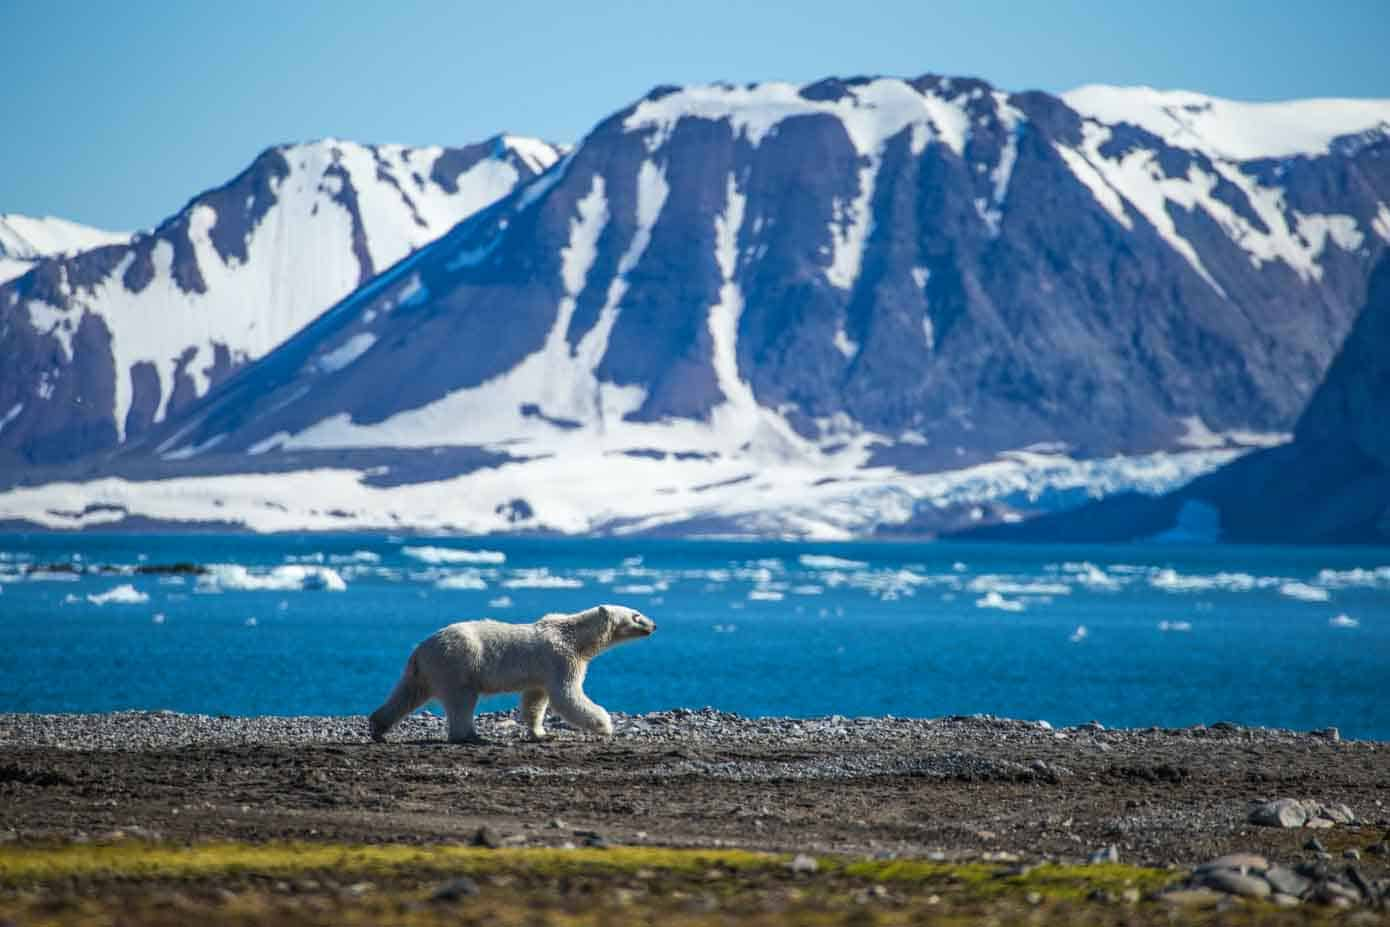 Polar bear walking in Svalbard with the ocean and mountains in view.